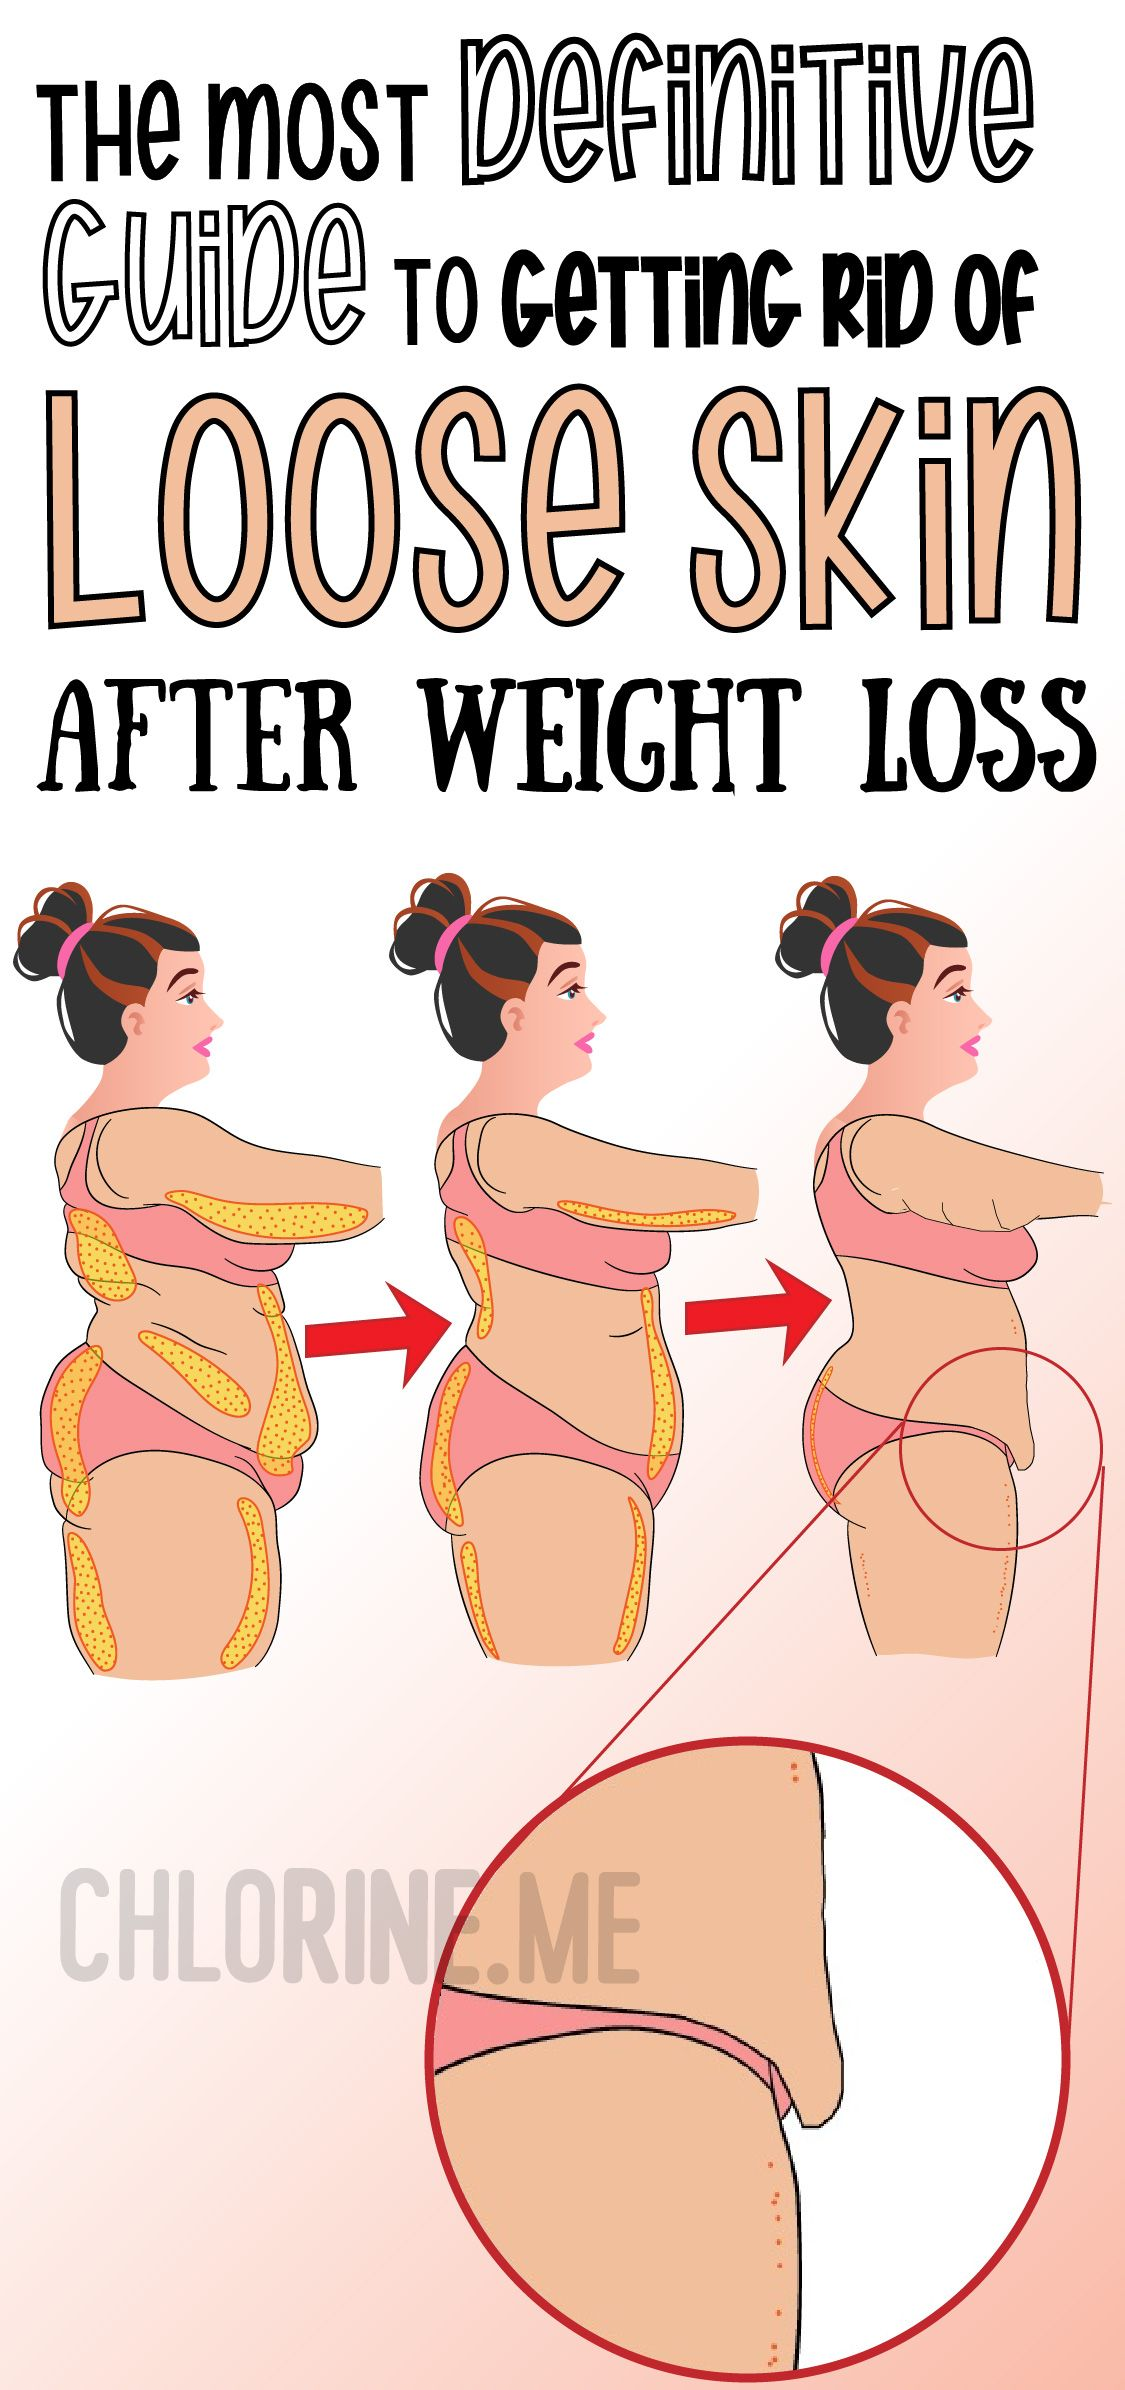 get rid of loose skin after weight loss the most definitive guide